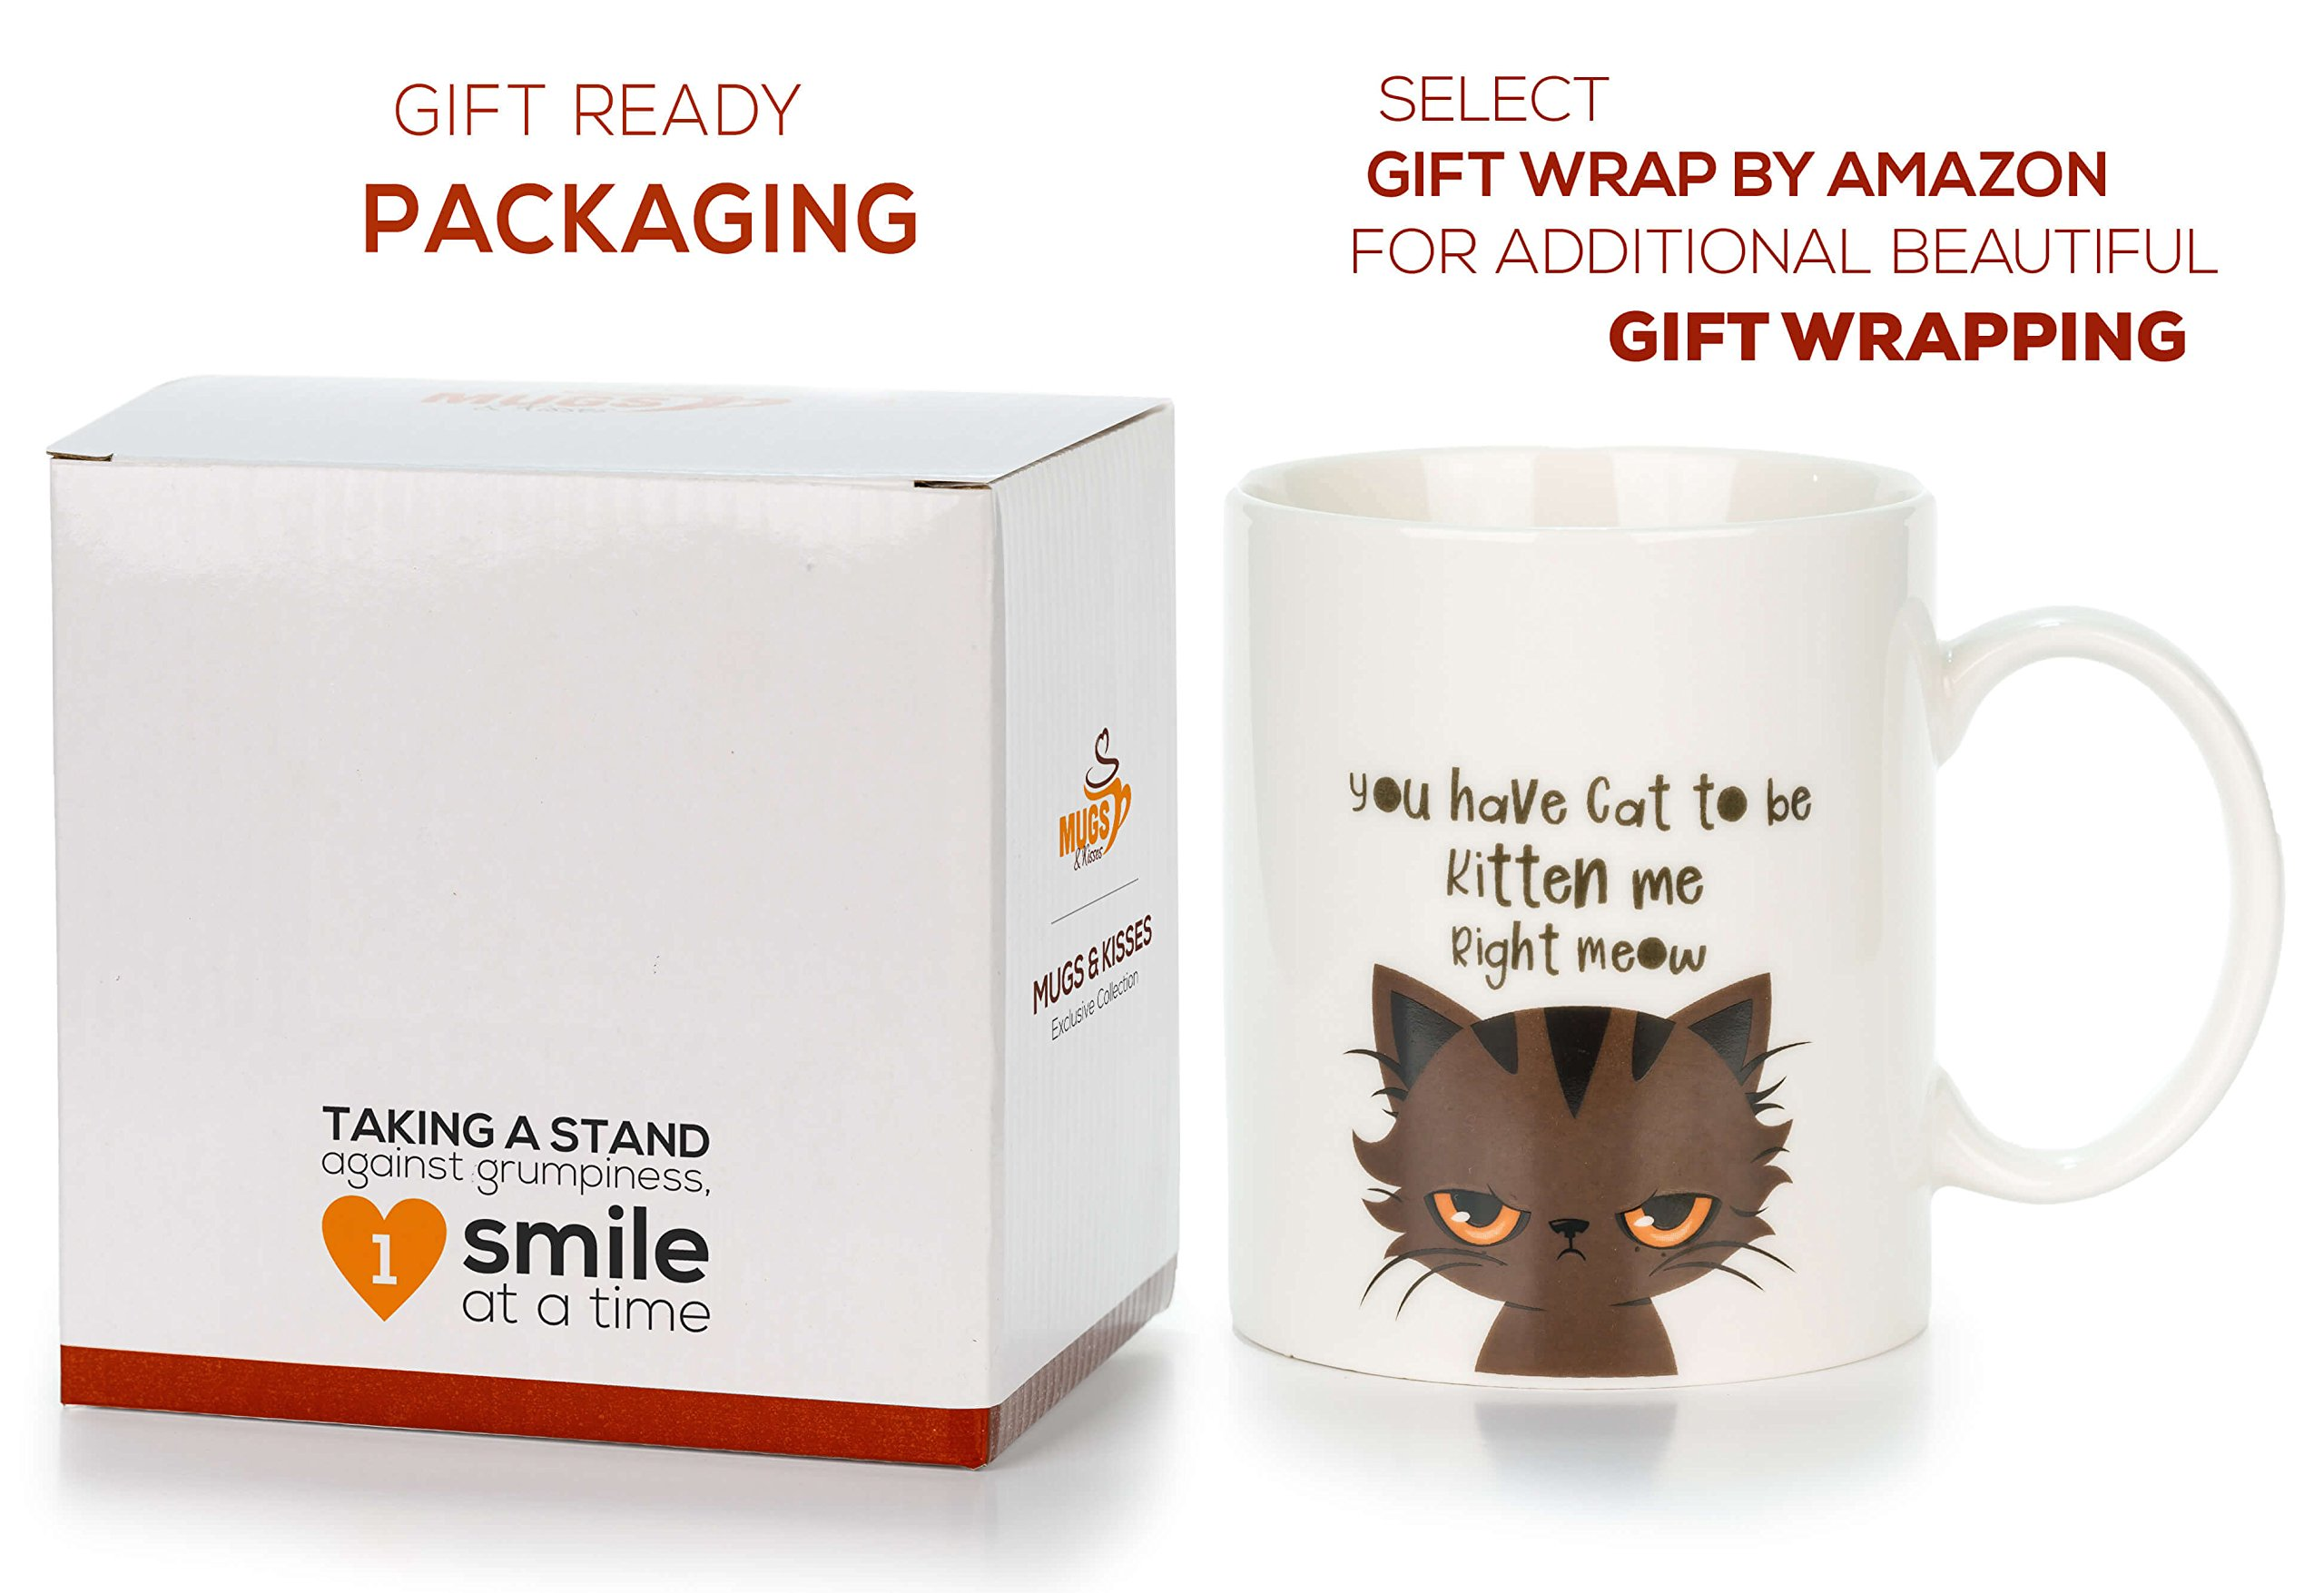 LetsInnovateLife Cat Mug - You Have Cat to Be Kitten Me Right Meow | Premium Coffee Mugs with Funny Cat Sayings | 11 Ounce Ceramic Mugs. A Great Birthday Surprise for Cat Lovers Kitten Stuff, Mom Tea